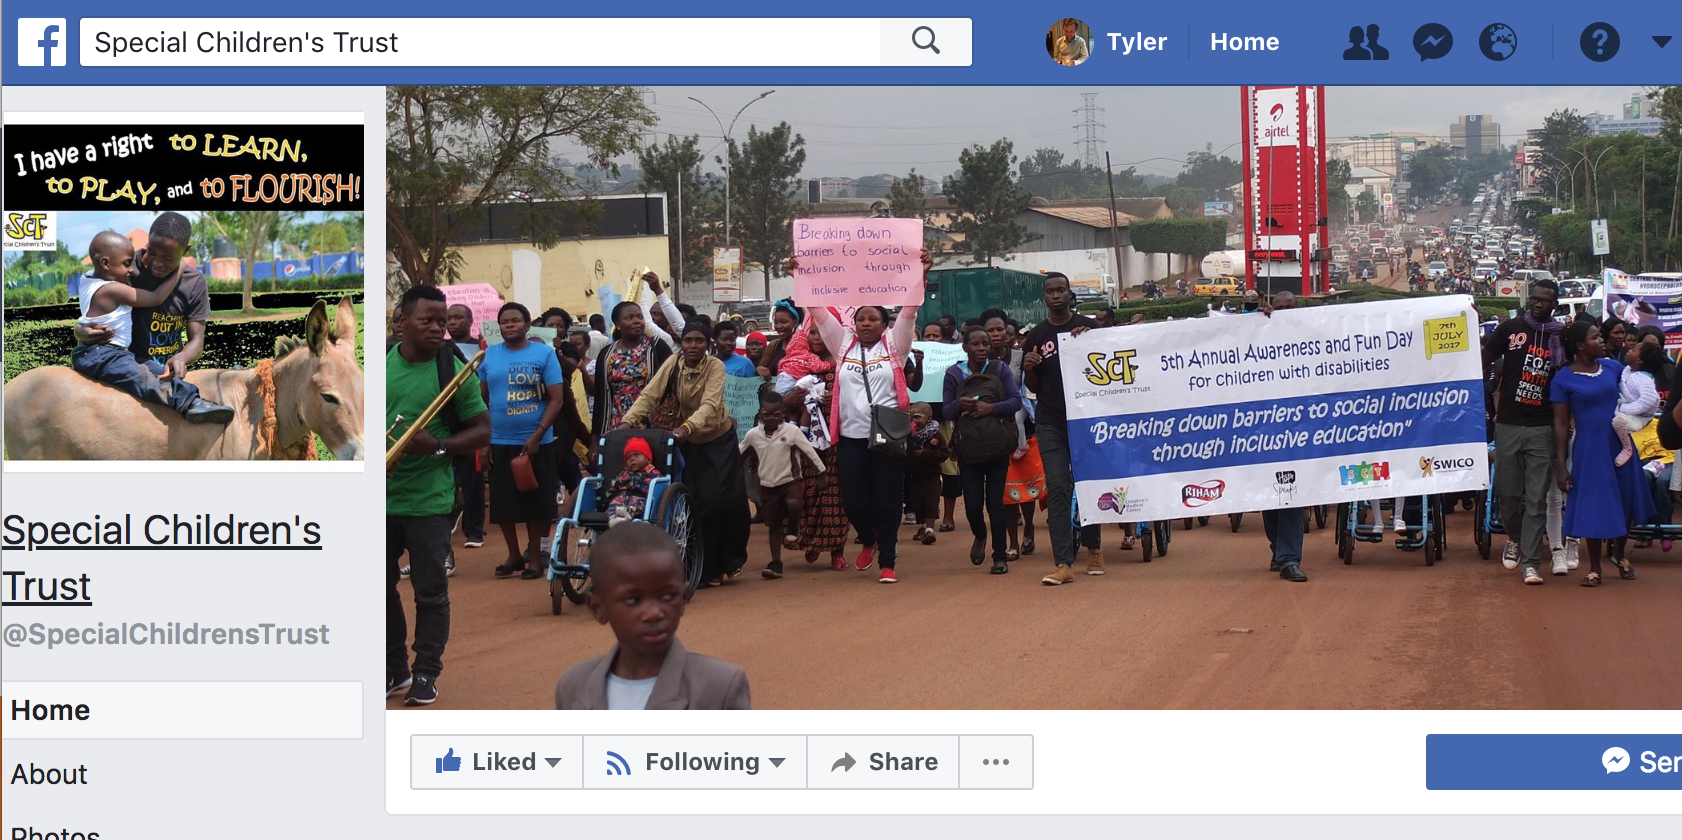 SCT's Facebook page prominently features a scene of the Awareness Day March. Screenshot by Tyler Zoanni.